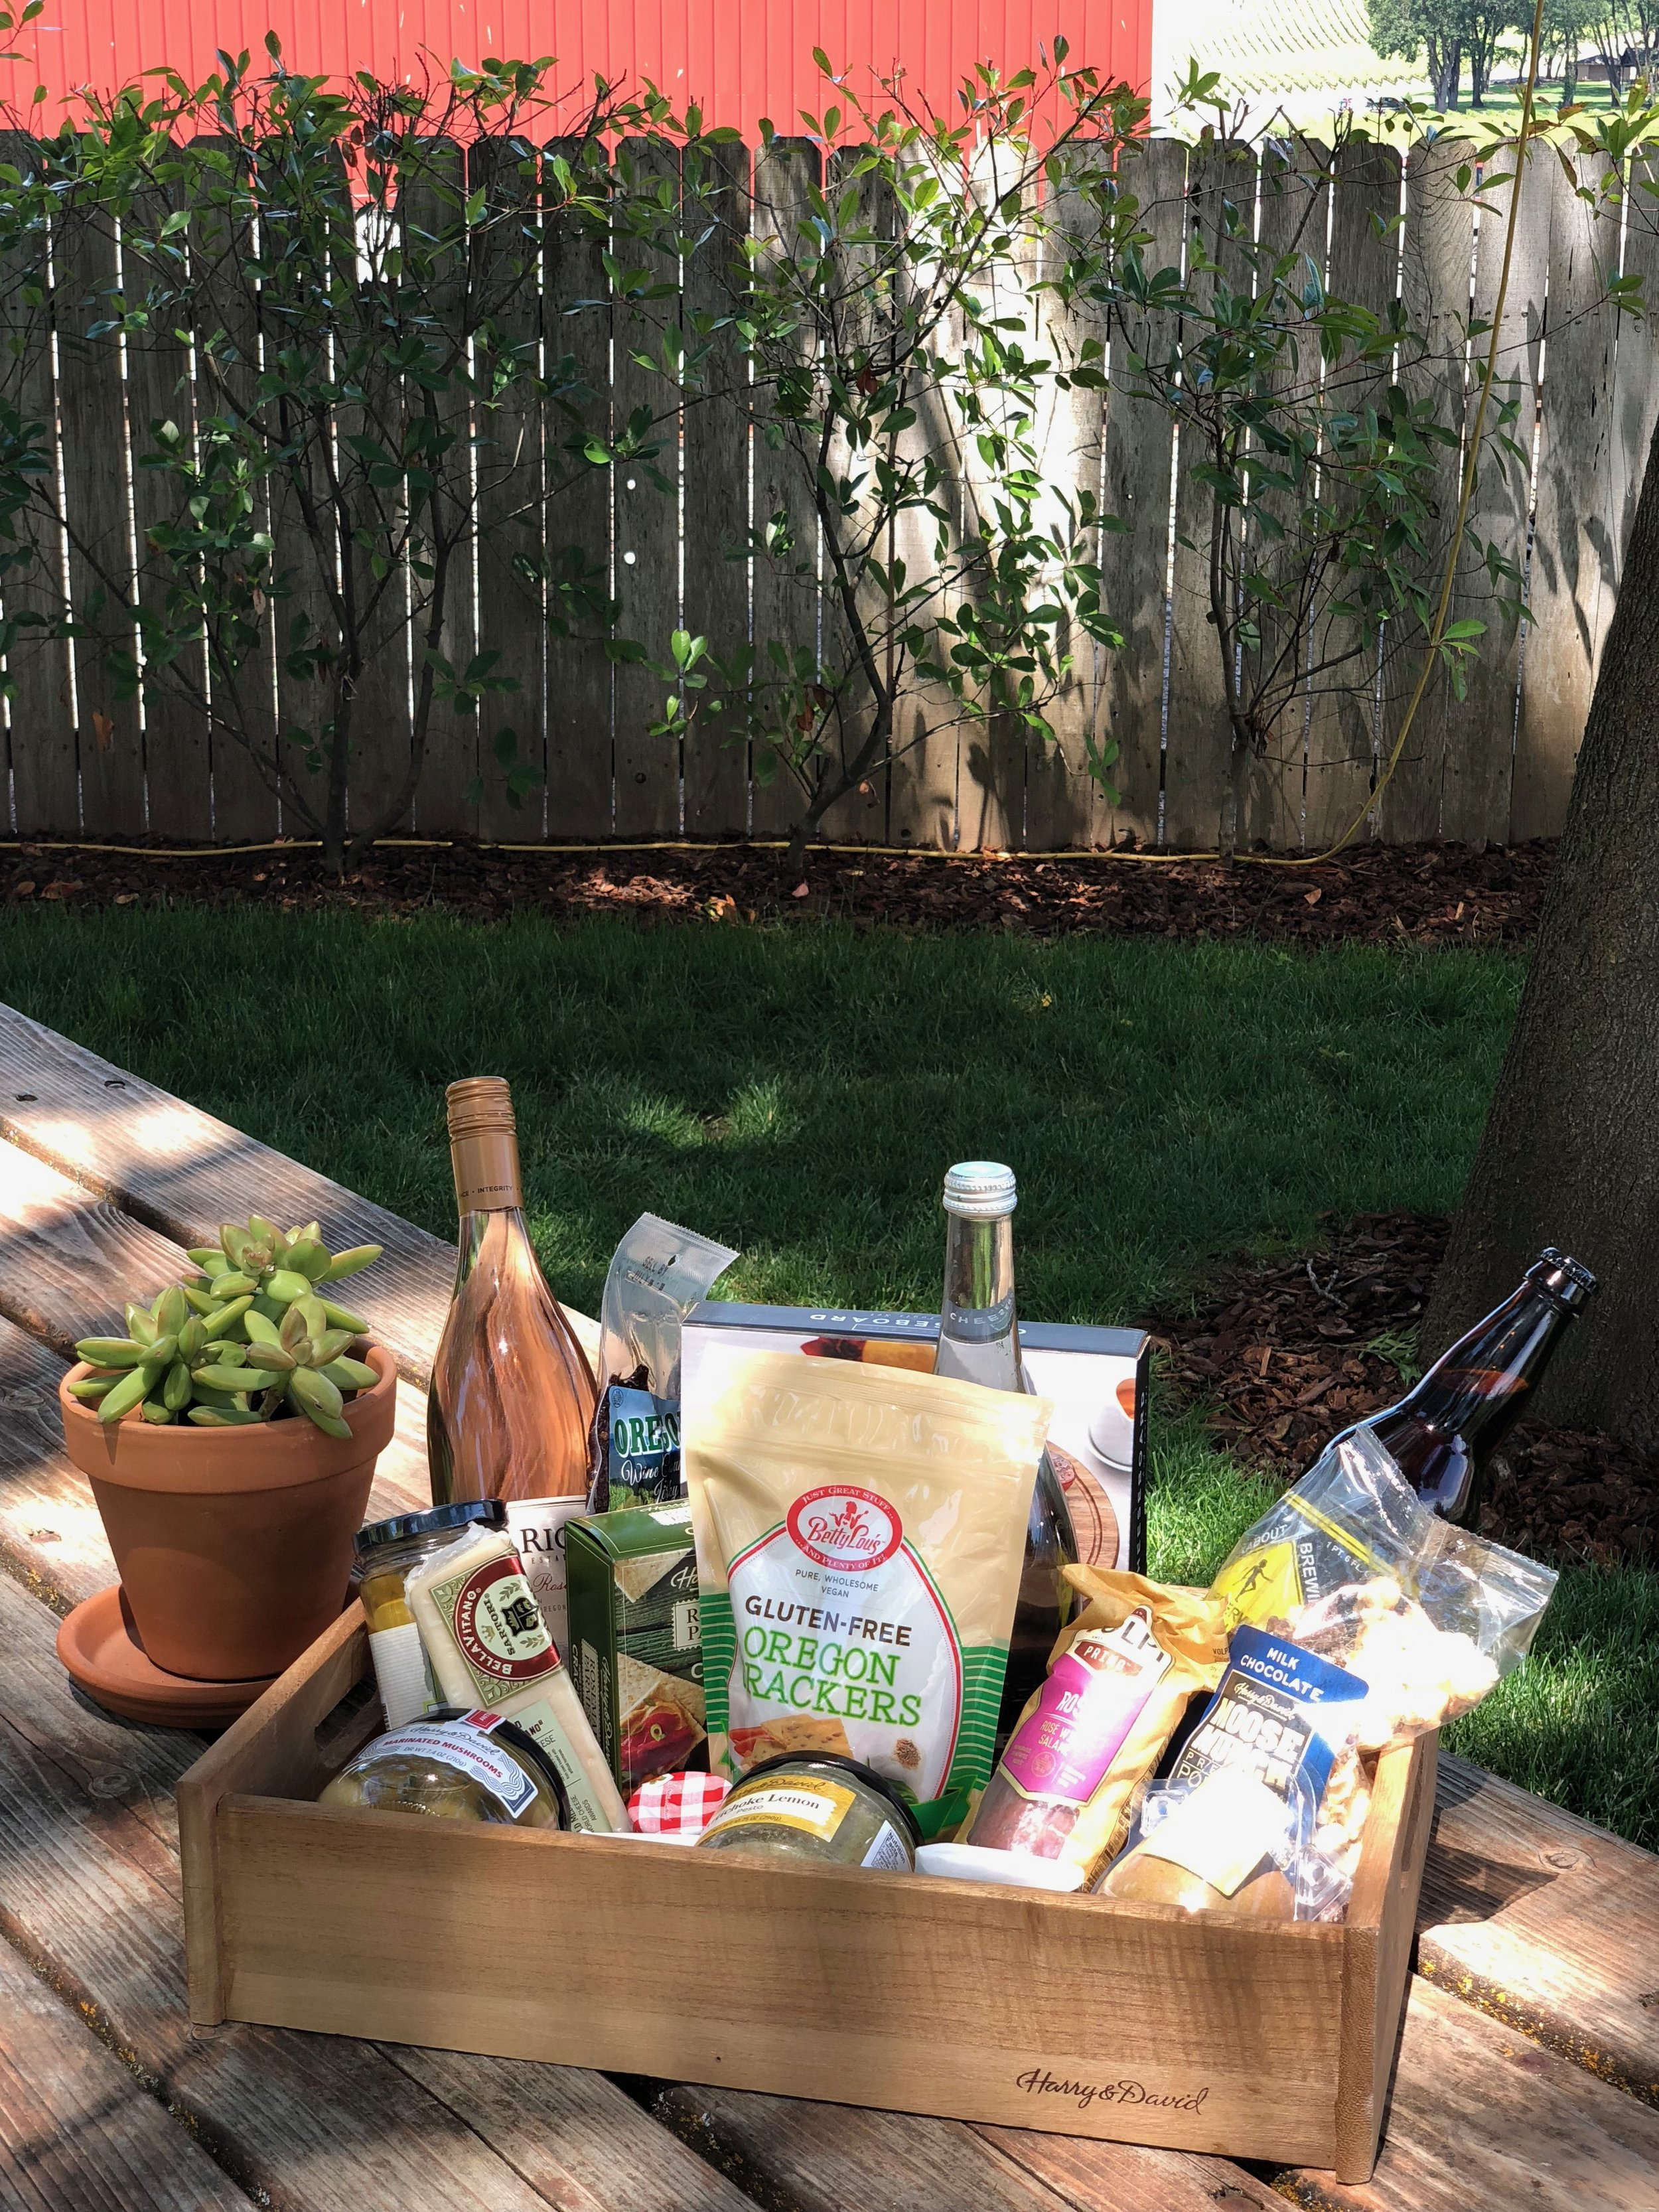 I was completley overwhelmed by this basket of goodies! Everything is locally made from Southern Oregon and I got to enjoy it at Del Rio Vineyards, a beautiful winery located right on the Rogue River.